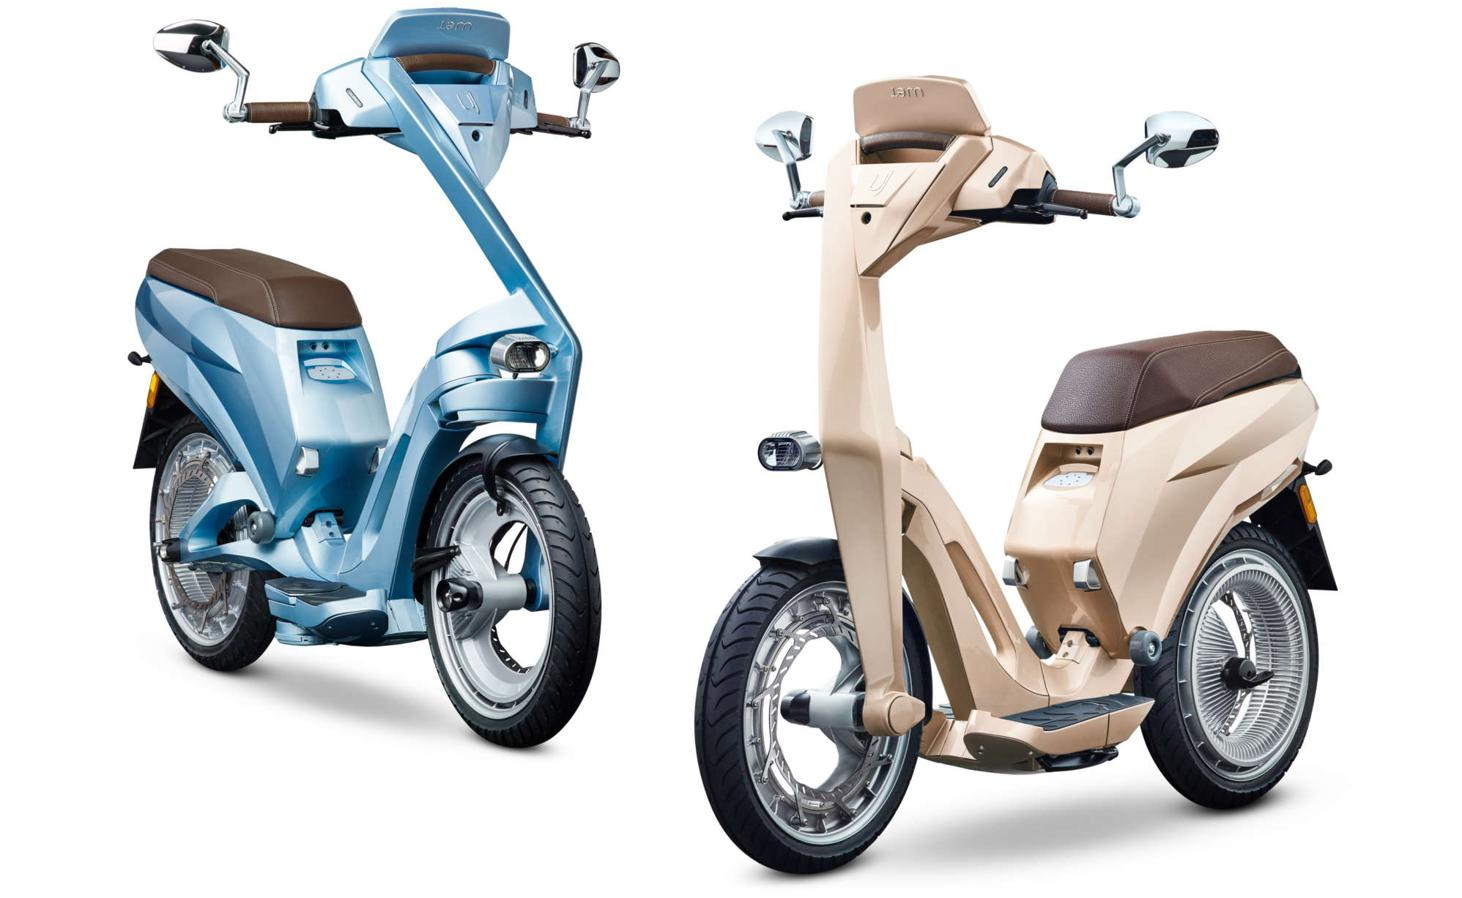 Uget Electric Scooter